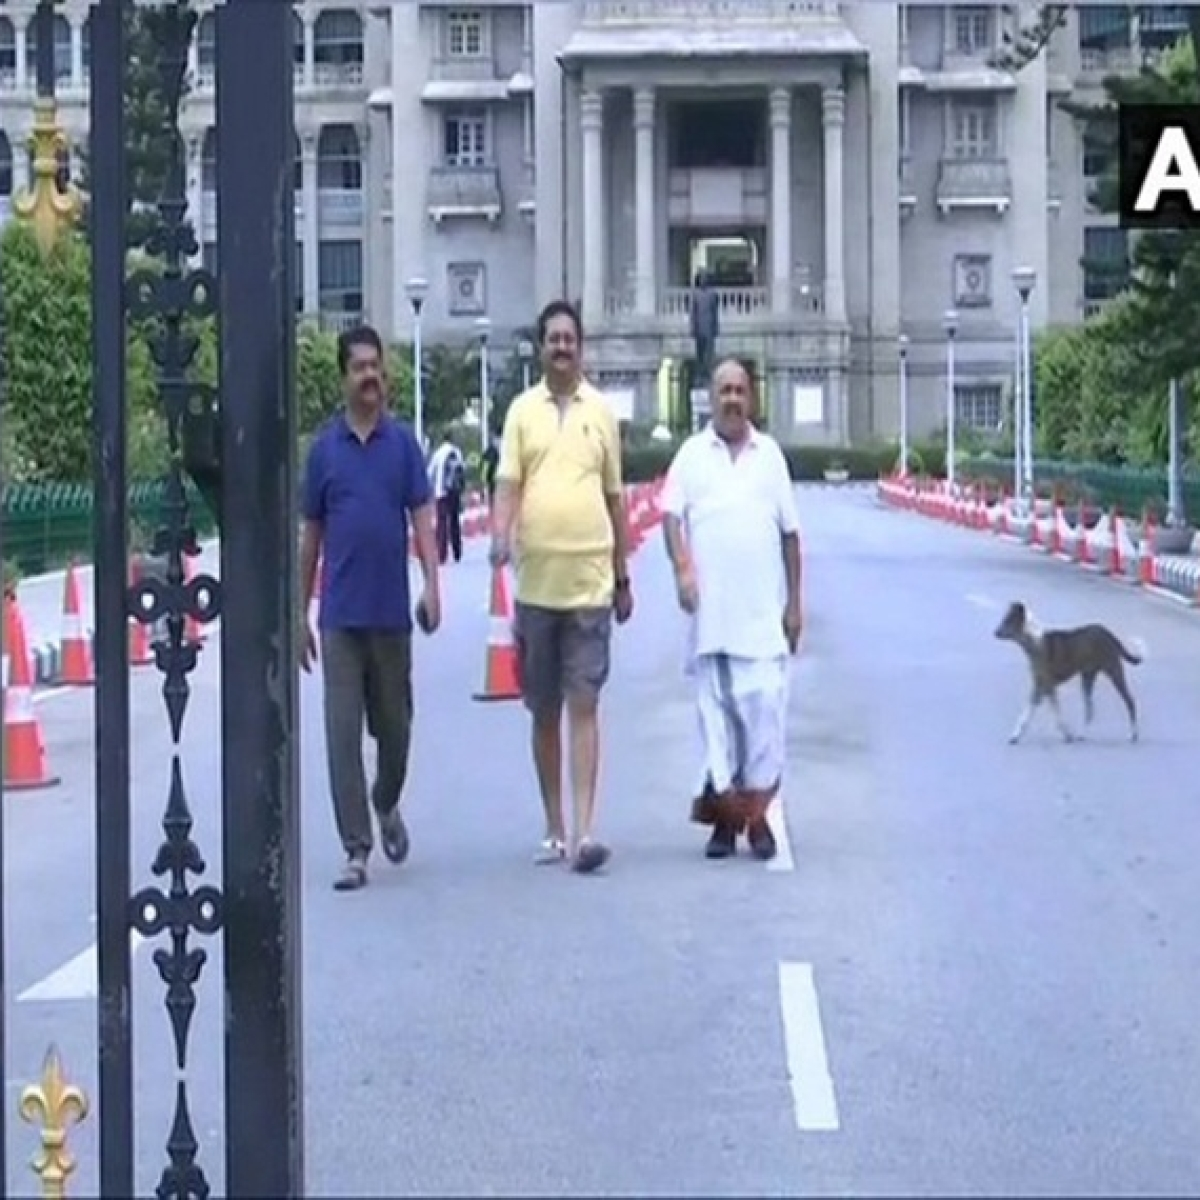 After night-long dharna inside house, BJP lawmakers take morning walk around Vidhana Soudha